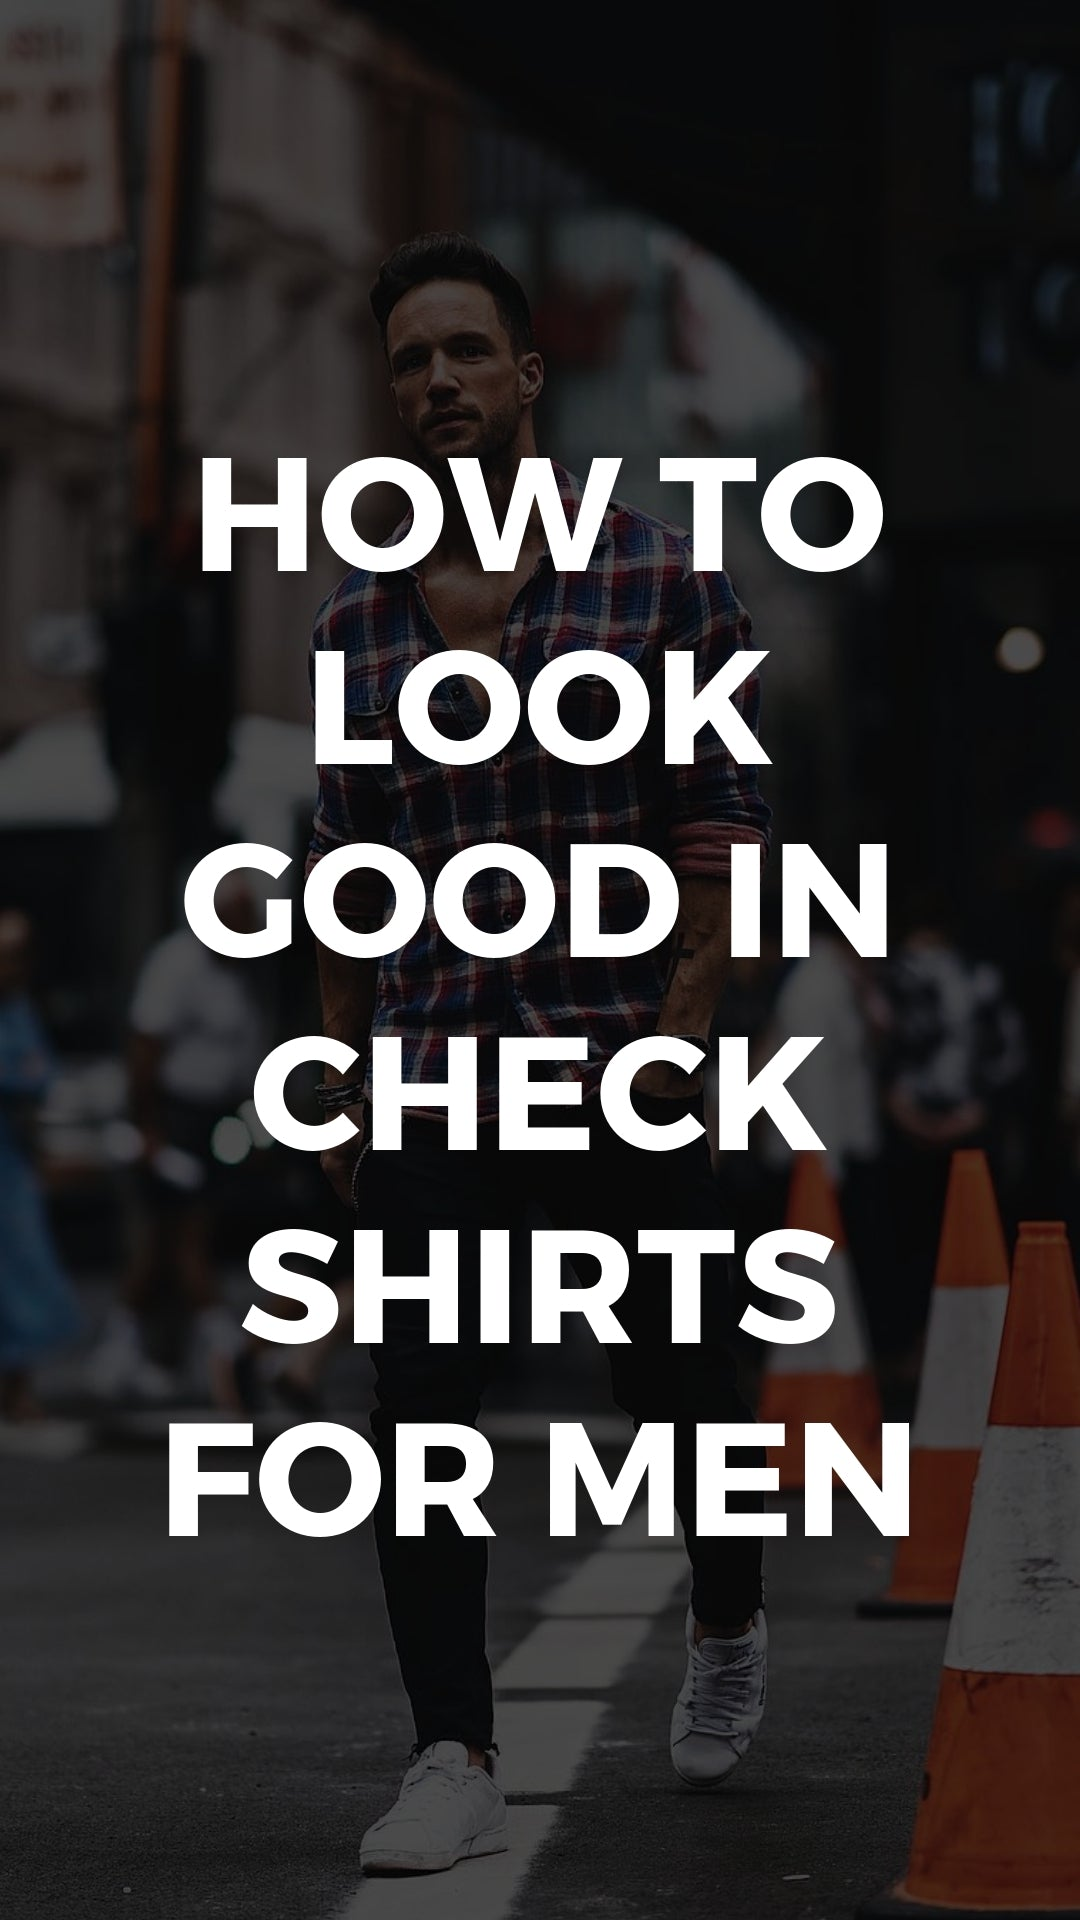 5 Coolest Check Shirt Outfits For Men #check #shirt #outfits #mensfashion #streetstyle